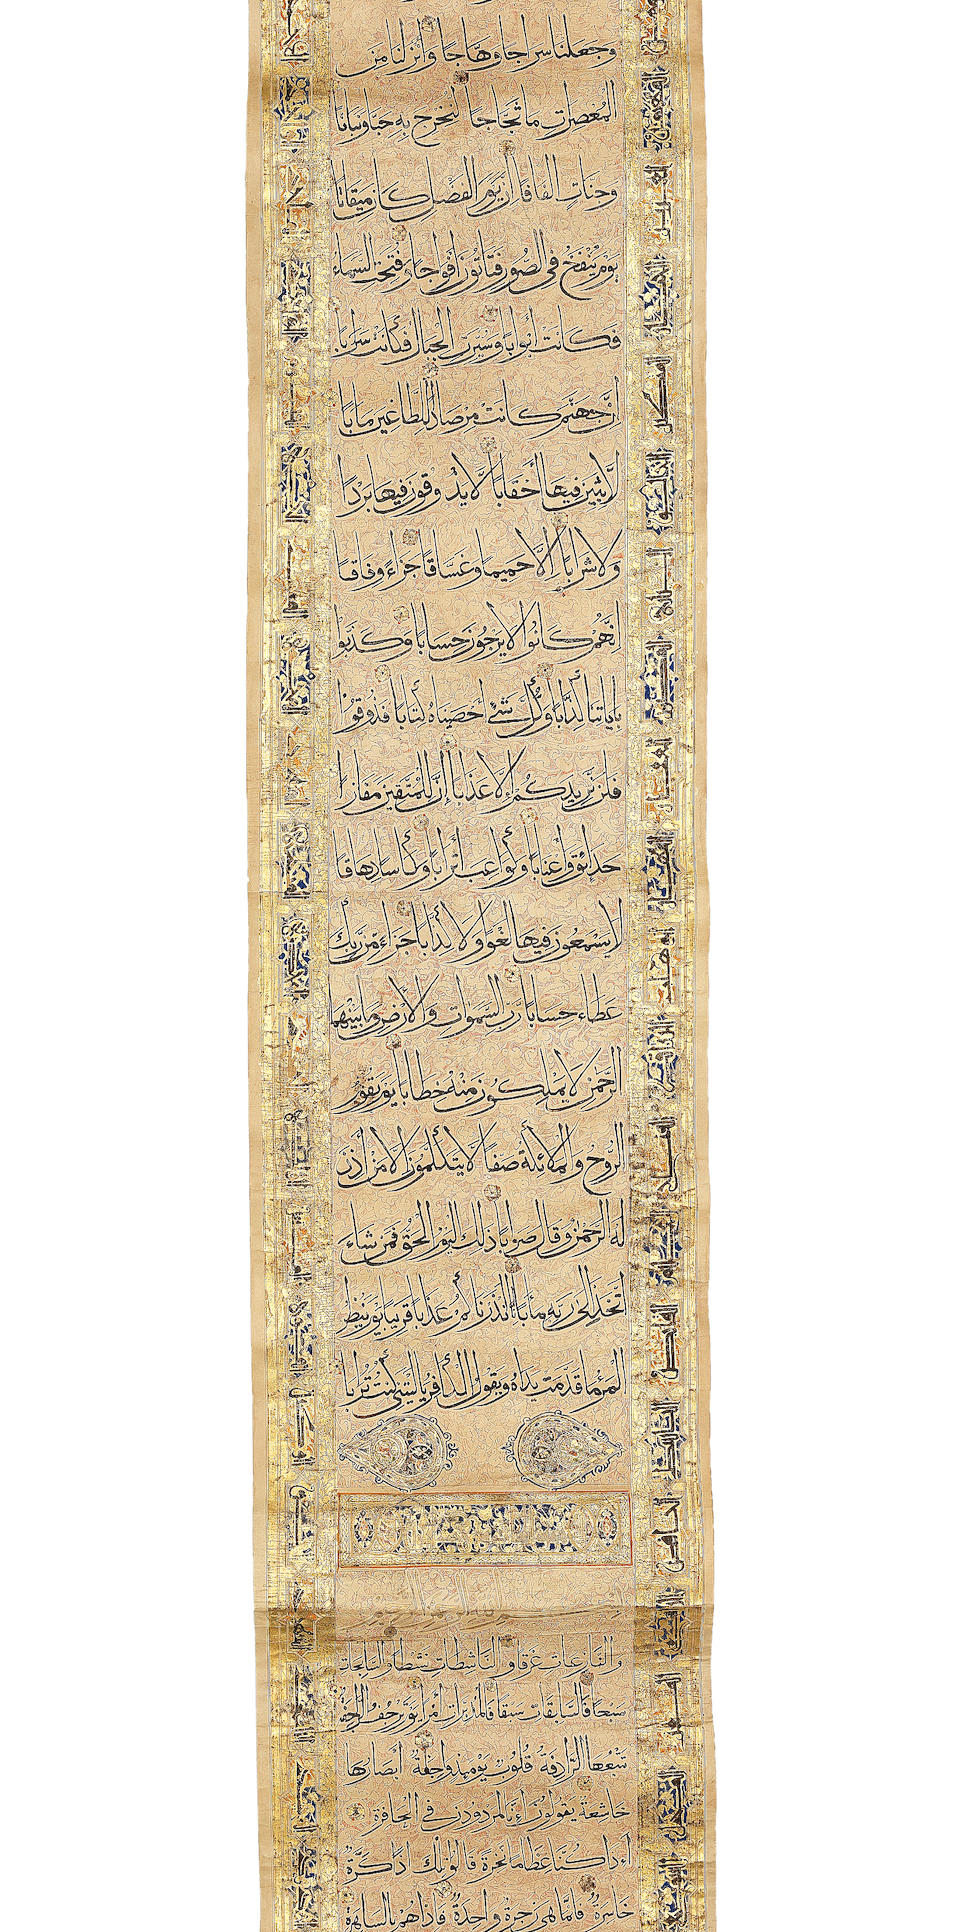 An illuminated scroll comprising the last 36 suras of the Qur'an (Juz XXX), in the manner of Ahmad al-Suhrawardi, with date AH 681/AD 1282-83 Near East, 20th Century